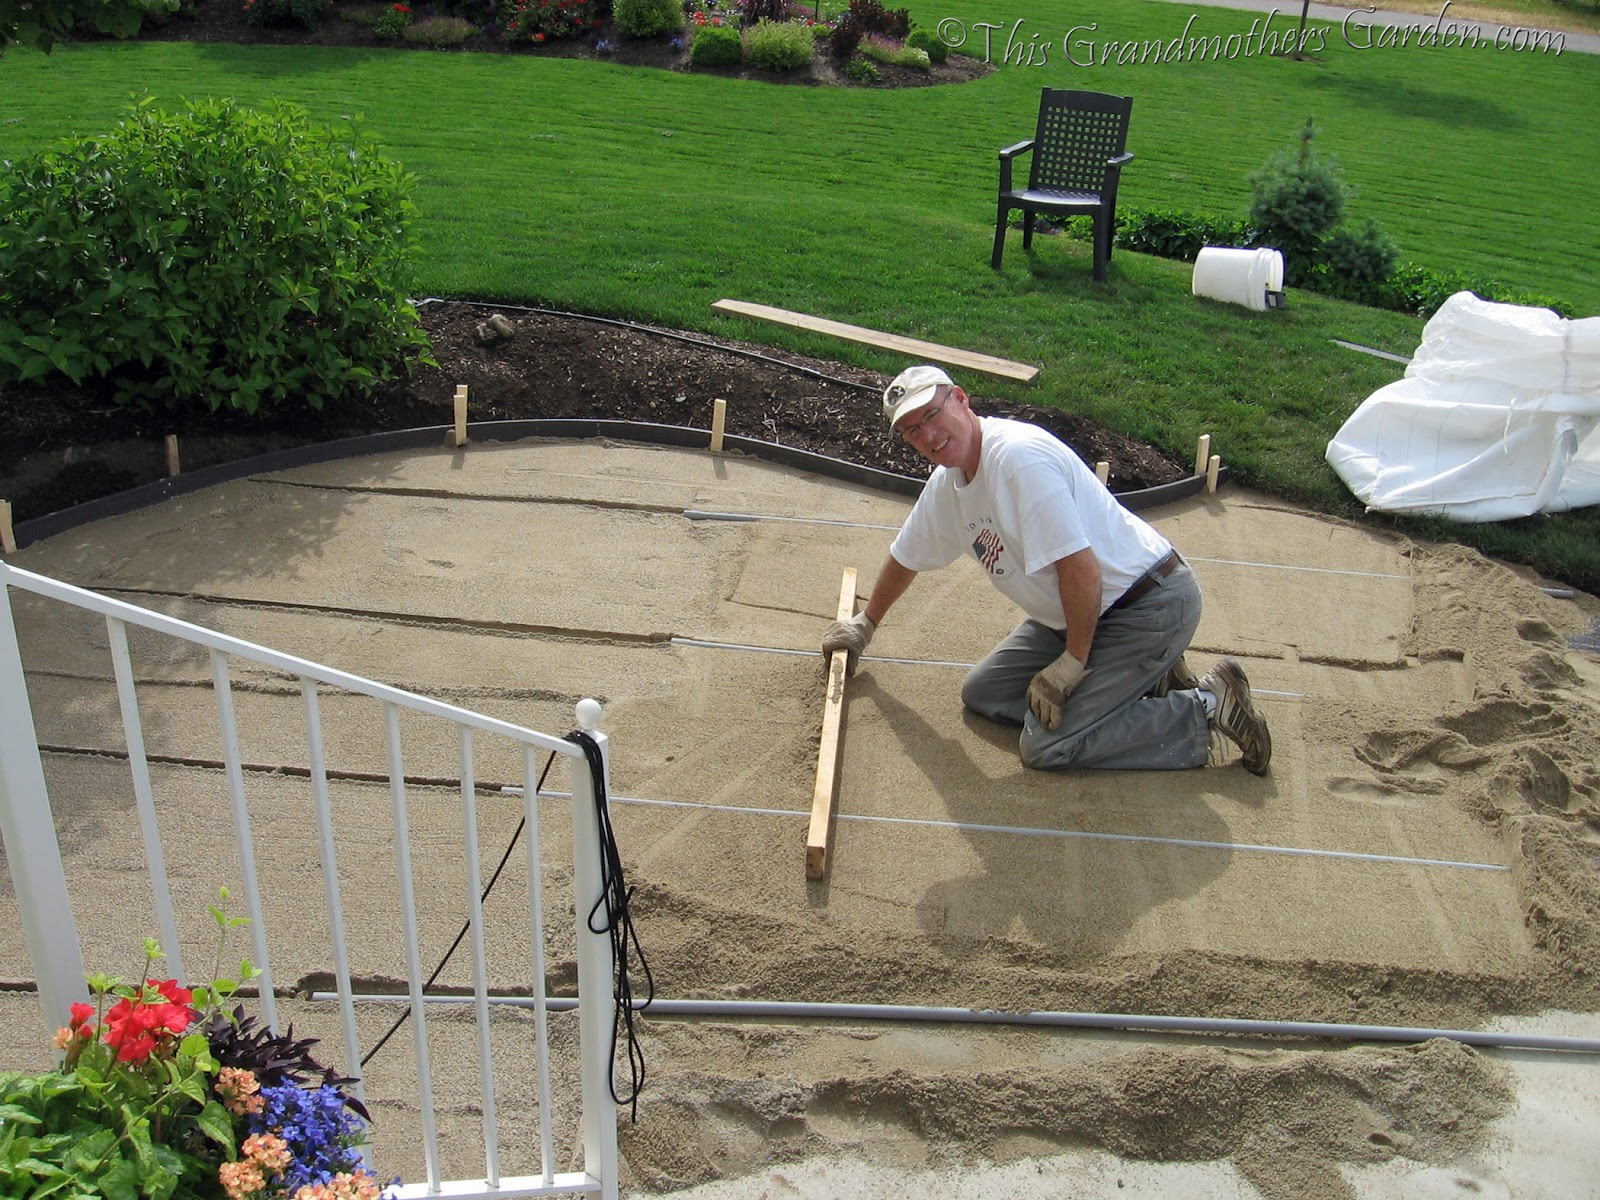 This Grandmotheru0027s Garden: DIY Flagstone Patio... Preparing The Foundation